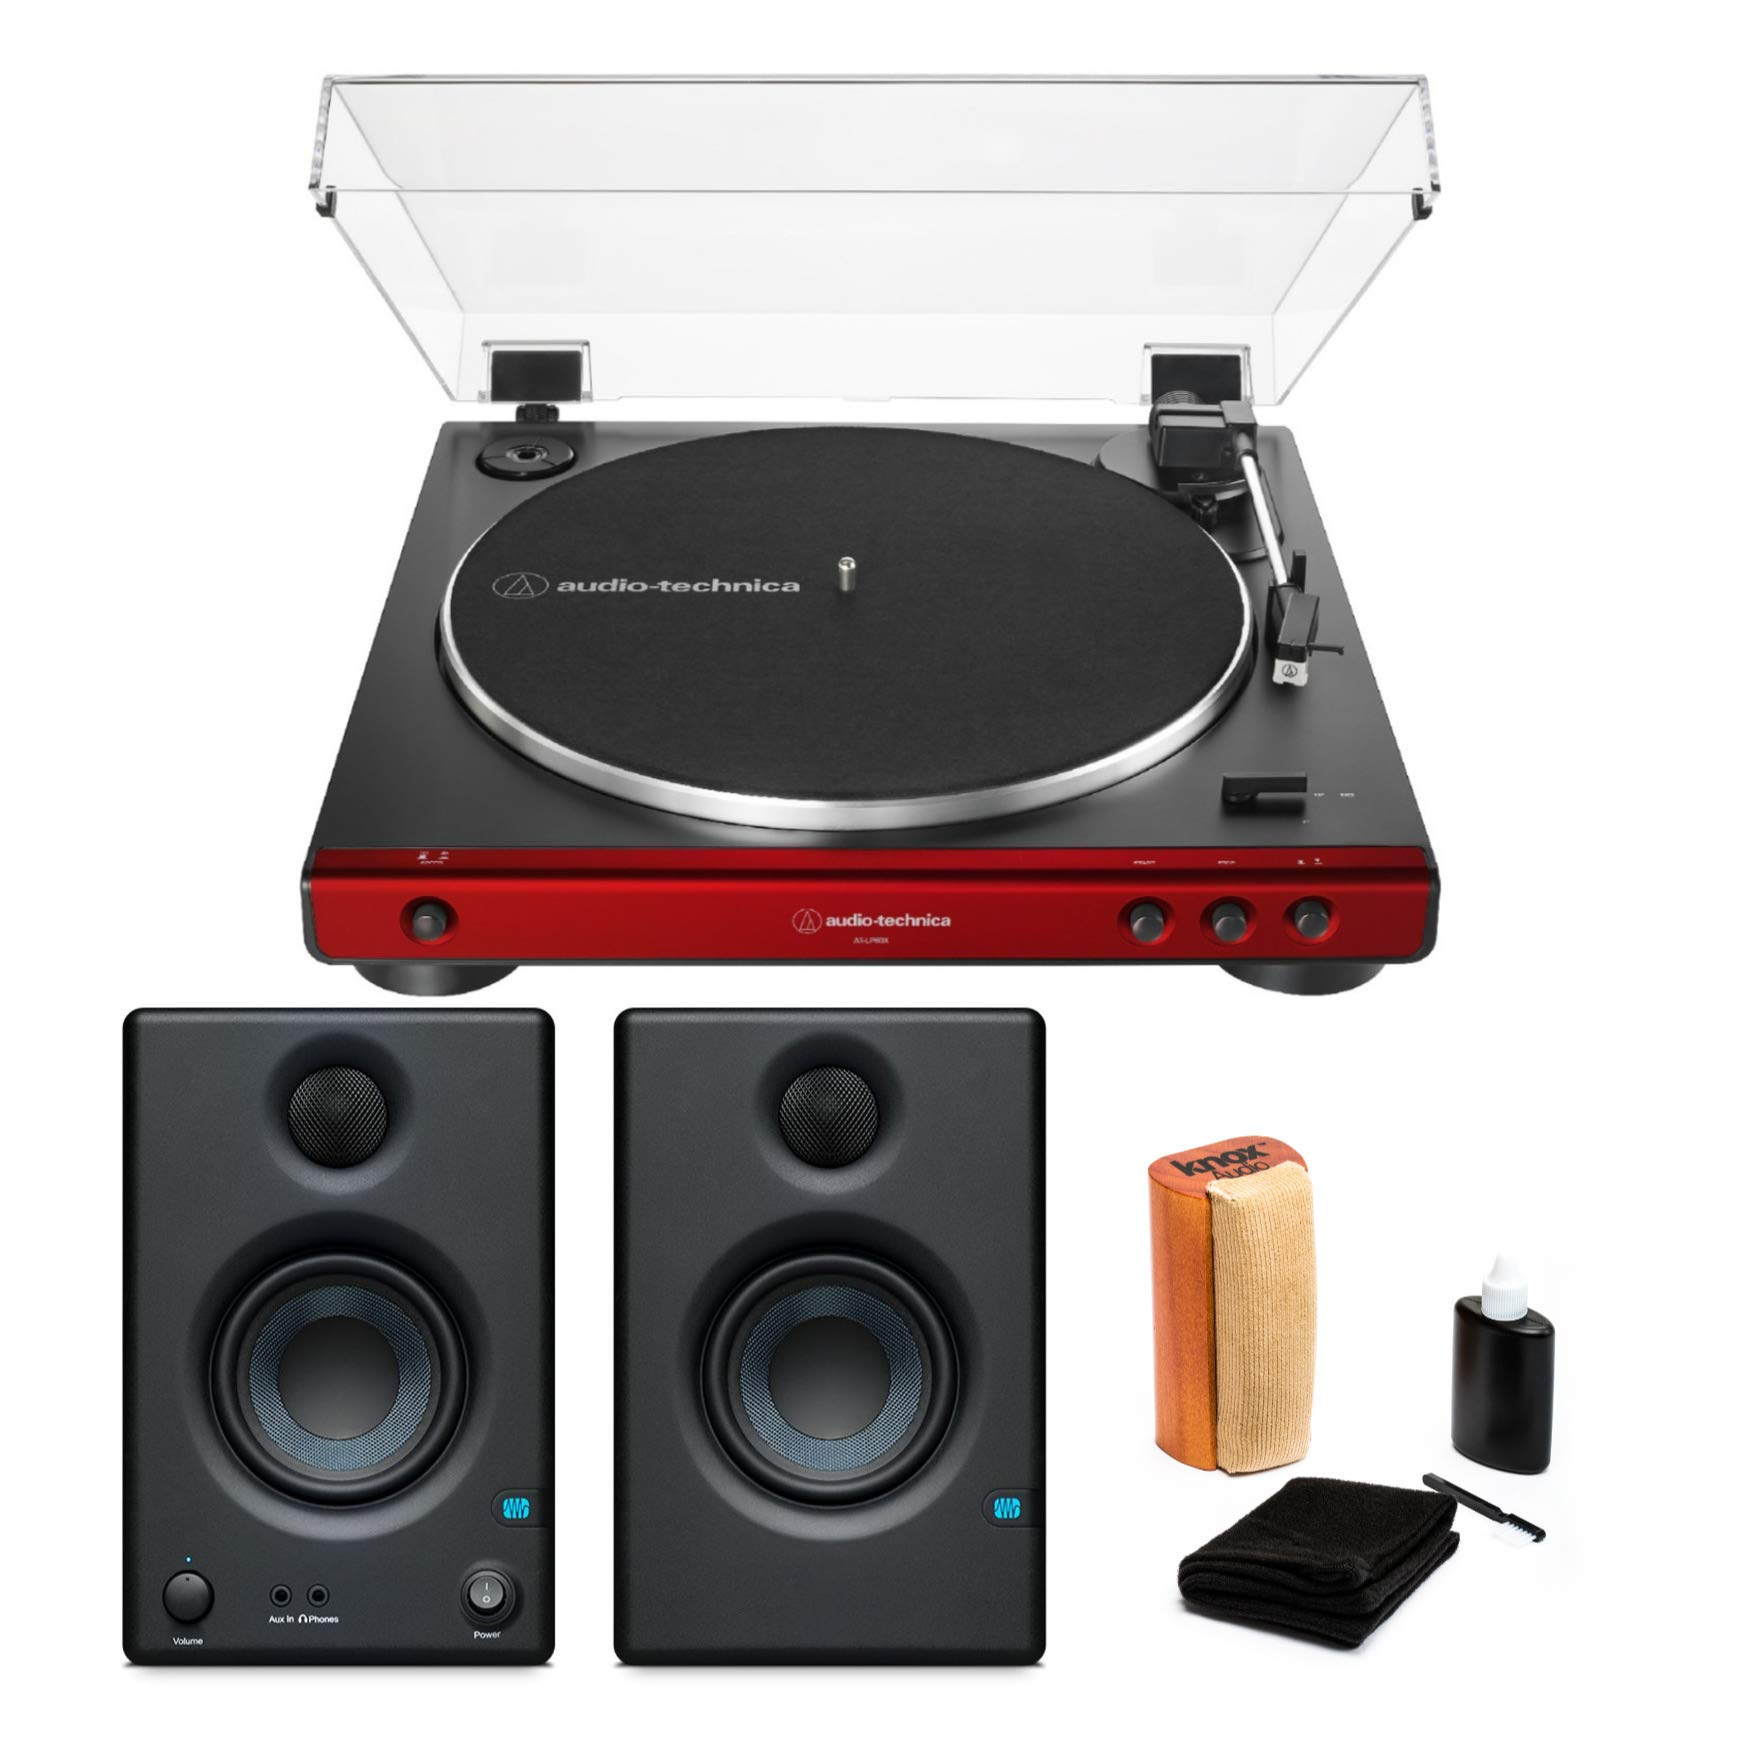 Audio-Technica AT-LP60X Turntable (Red) Bundle with Monitors and Knox Cleaning Kit (3 Items)